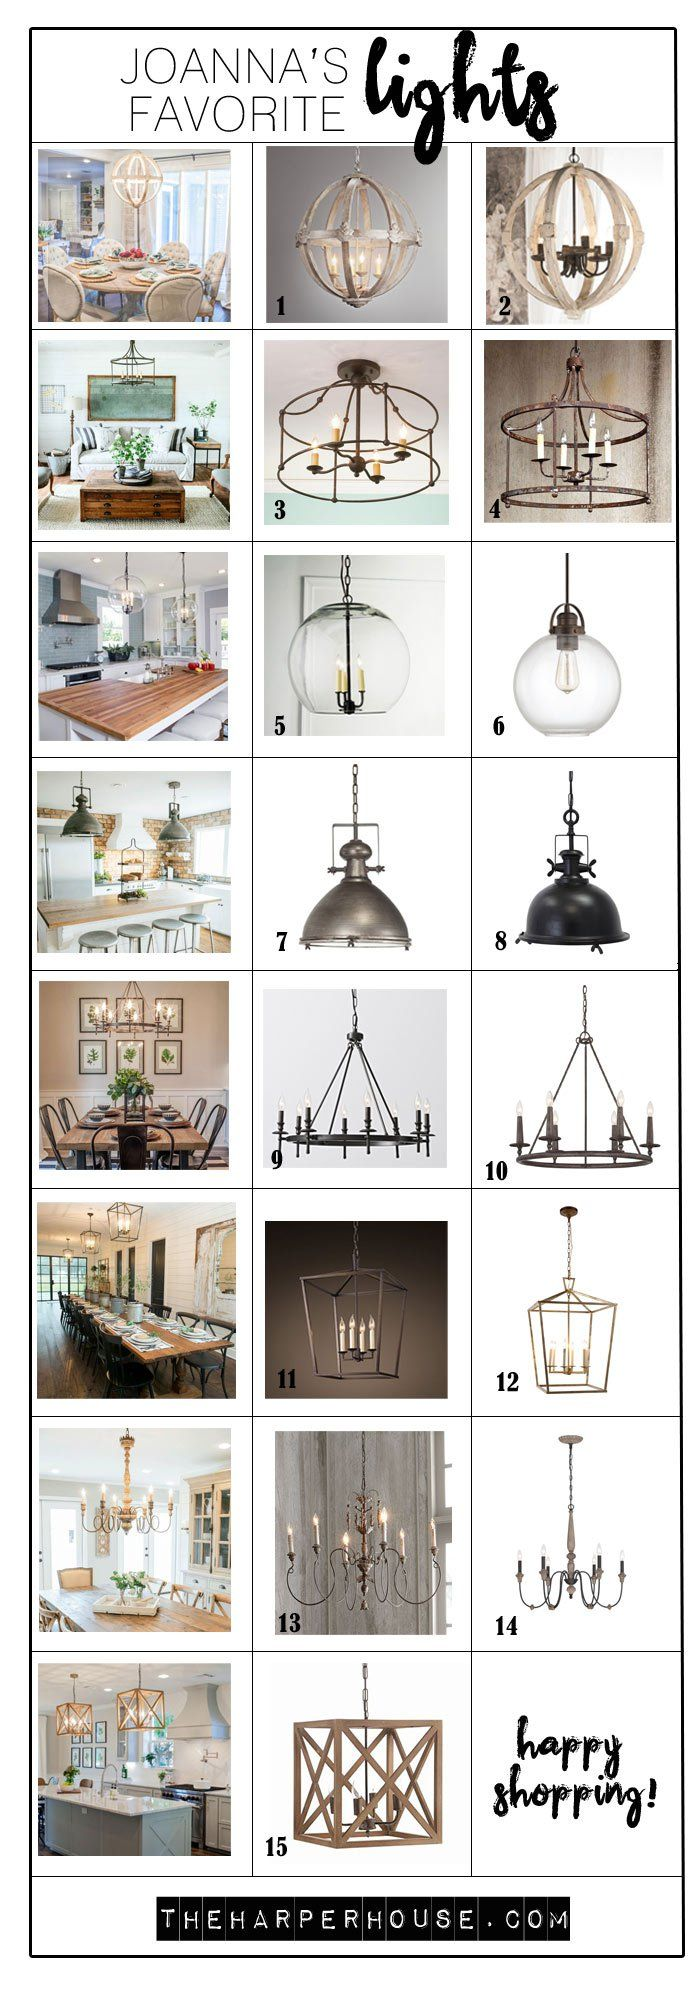 Favorite Light Fixtures For Fixer Upper Style Loxahatchee - Joanna gaines kitchen light fixtures